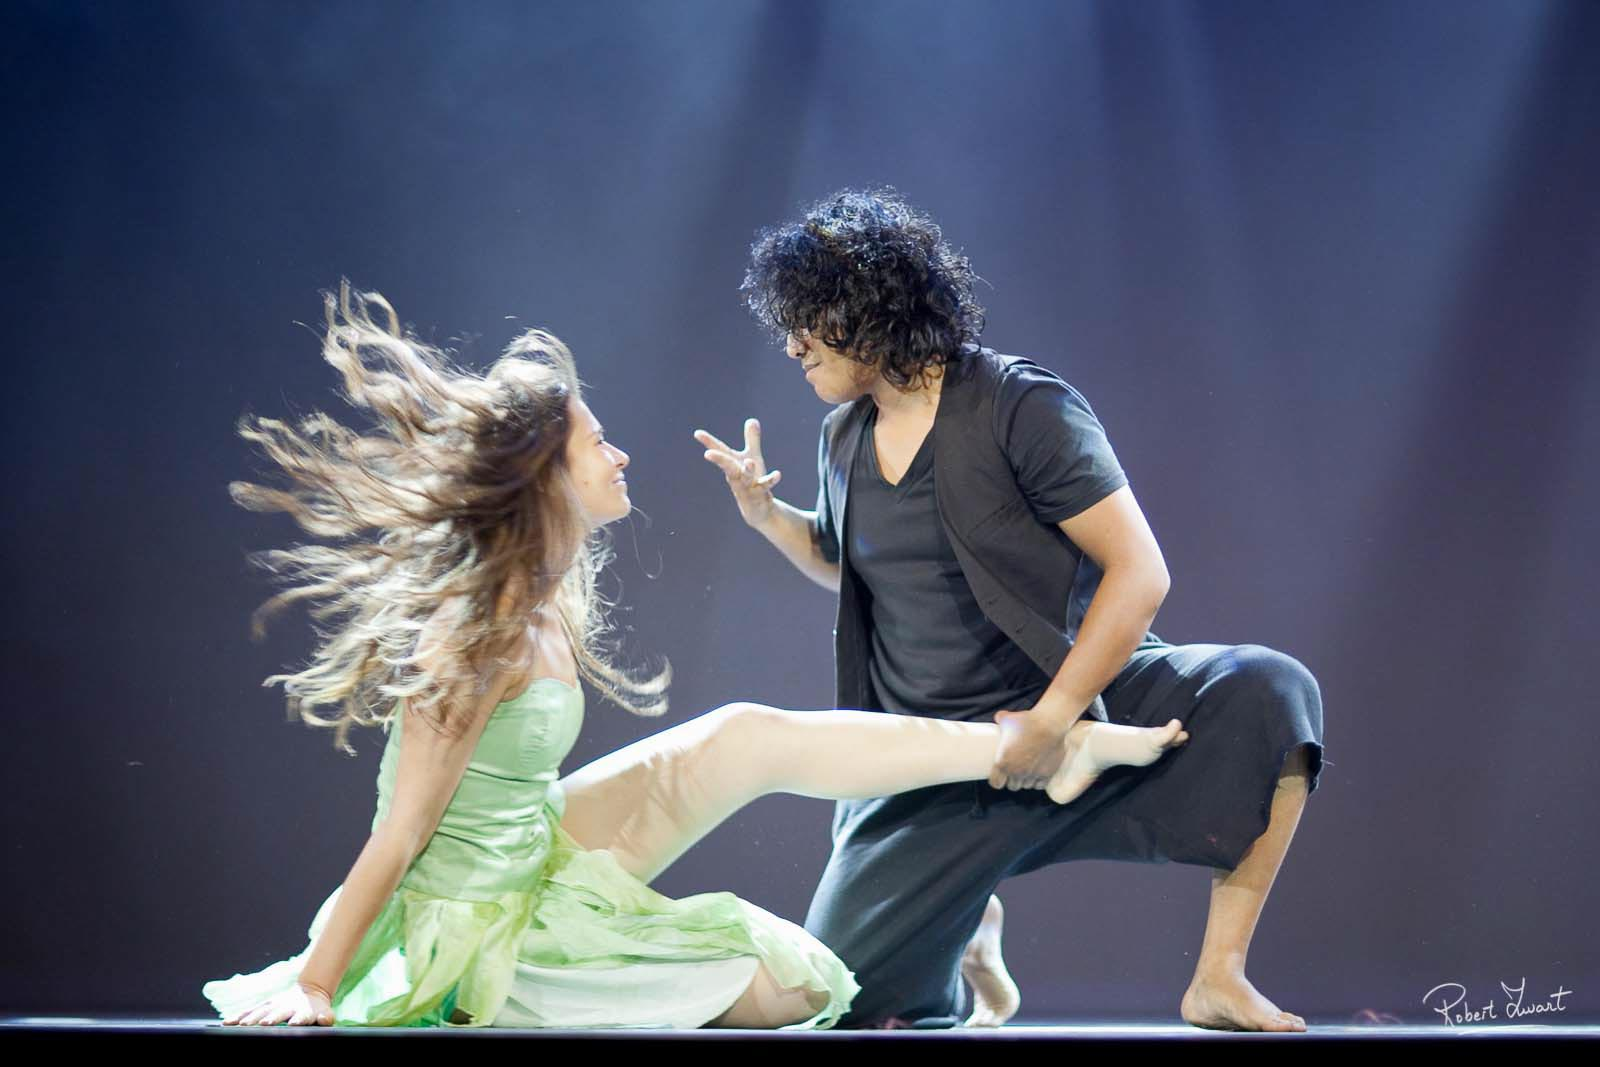 Dynamic interaction between female and male dancer.